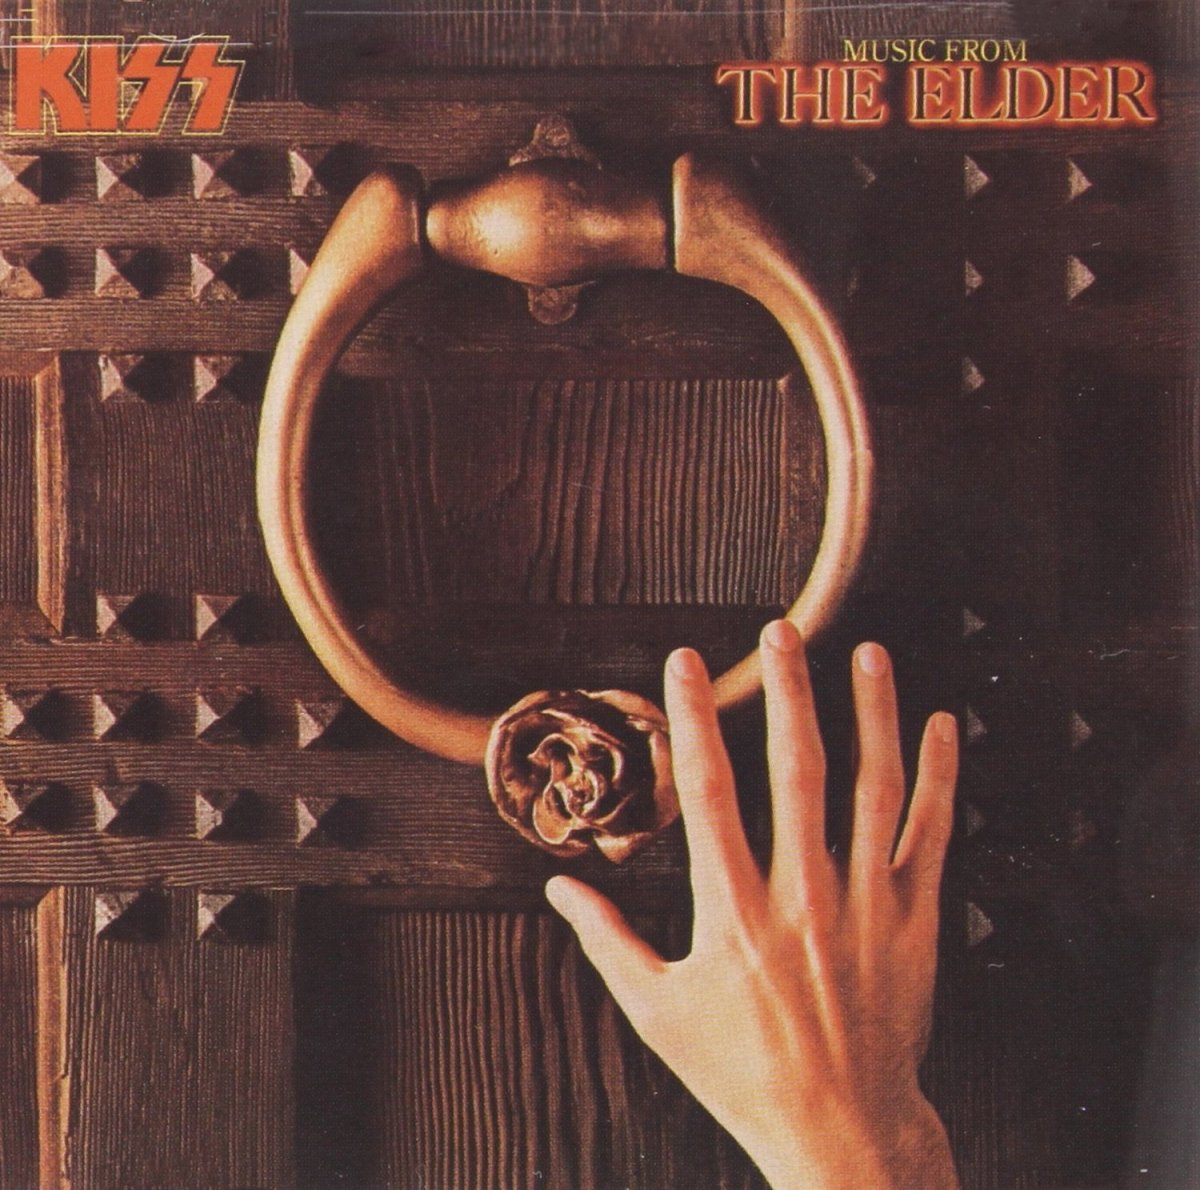 Music From the Elder: A Kiss Album That's Better Than You've Been Told